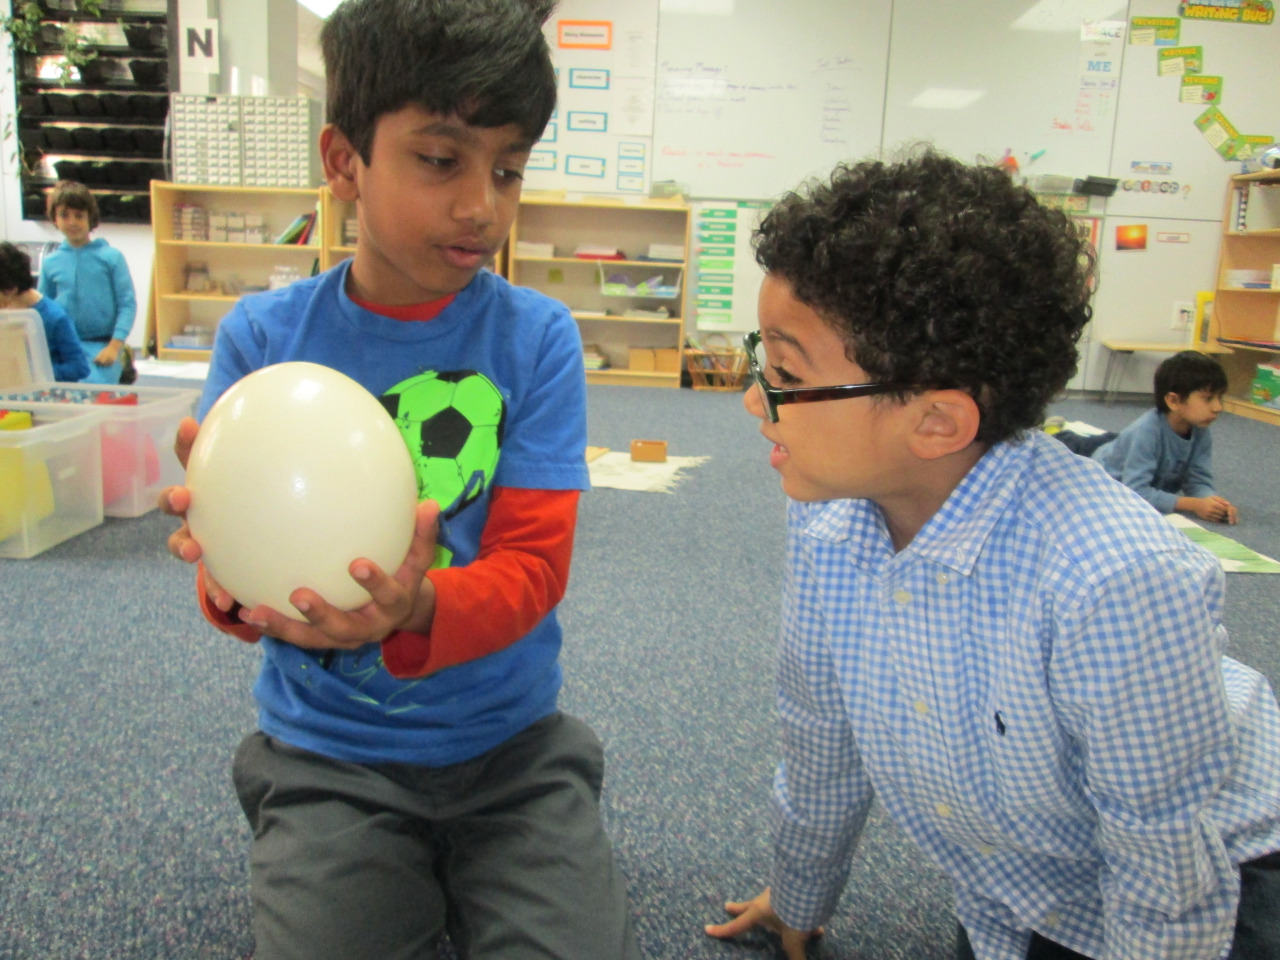 First grade Lower Elementary East students continued their studies in Zoology with a lesson about birds. Thanks to Ms. Susan from LEN, the students saw various specimens ranging from different kinds of birds, to nests, to an Ostrich egg!